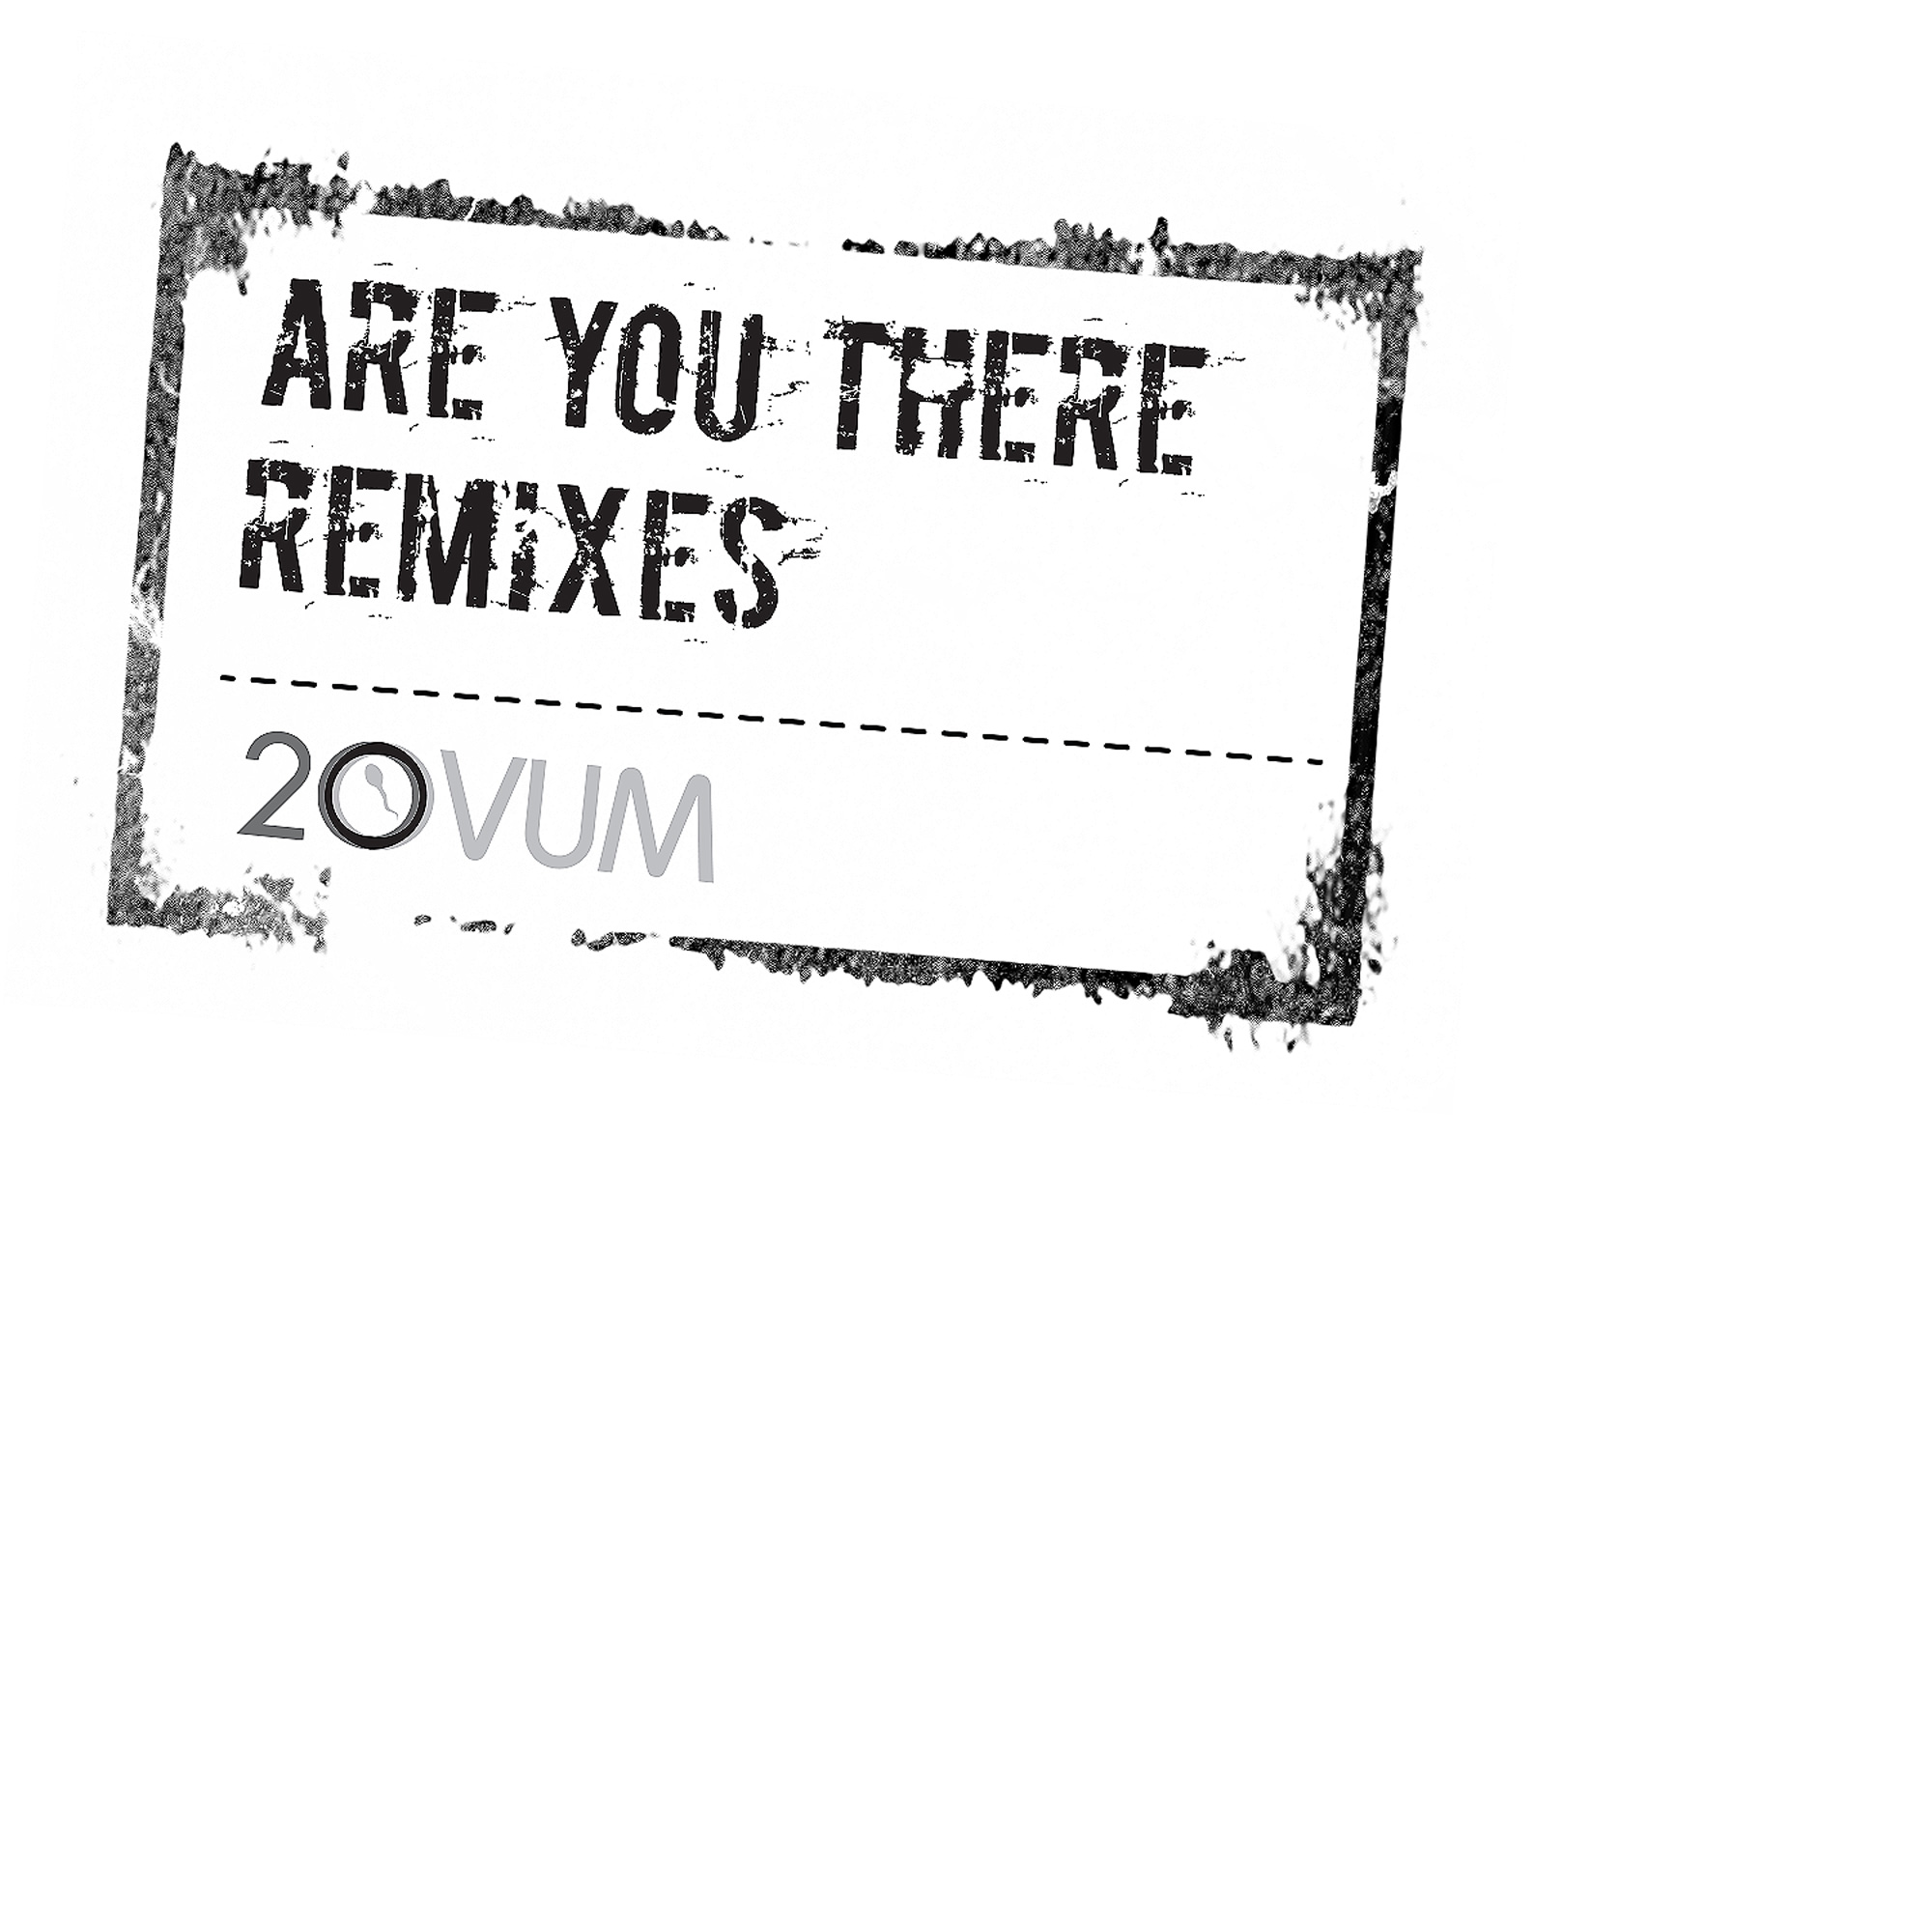 Are you there? Remixes